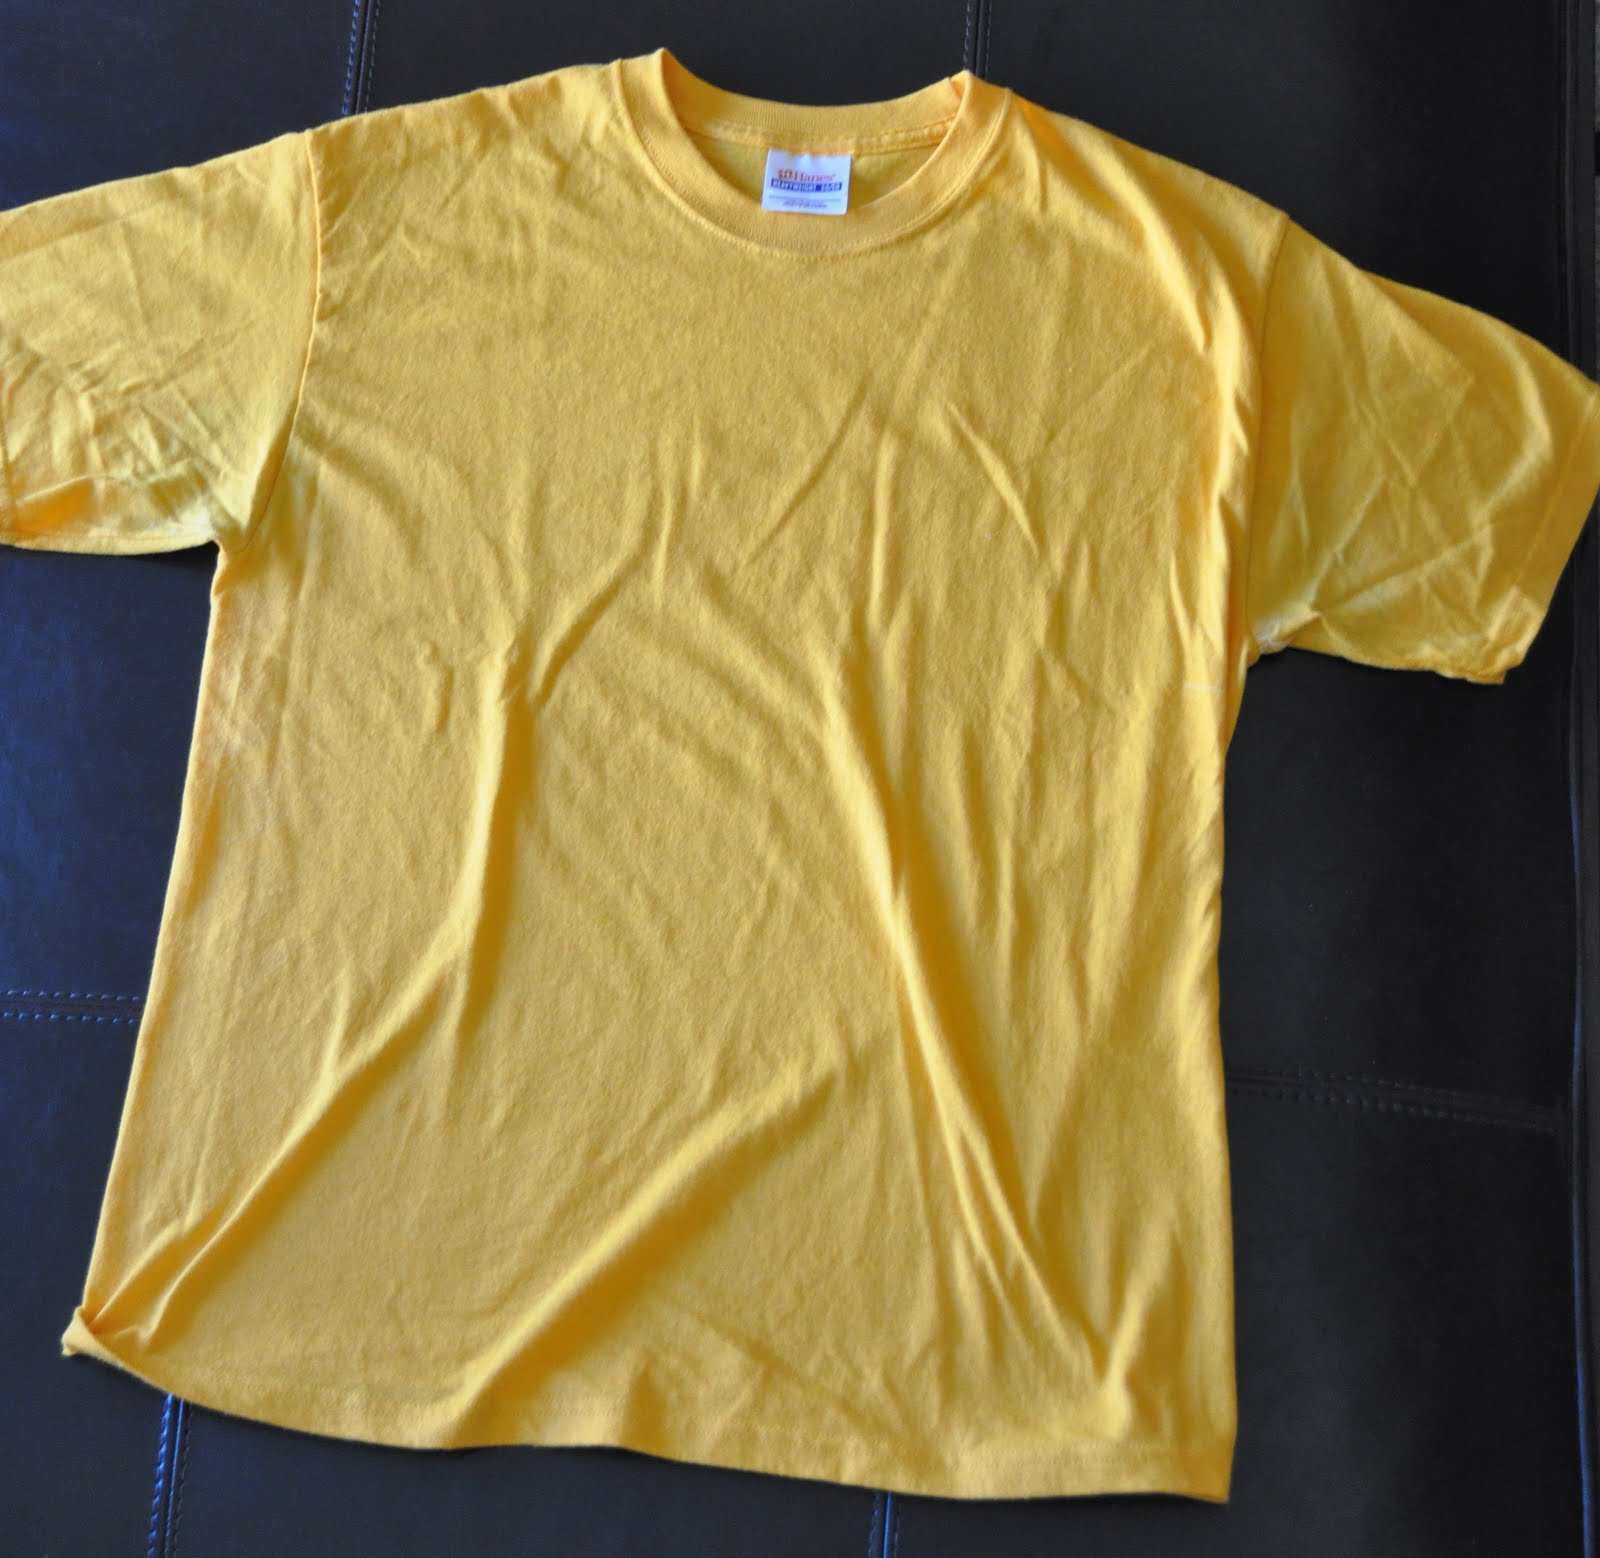 Design your own t-shirt hanes - Hanes 100 Cotton Tee Great Undershirt Or Perfect To Draw Design Your Own Tee From A Blank Slate T194